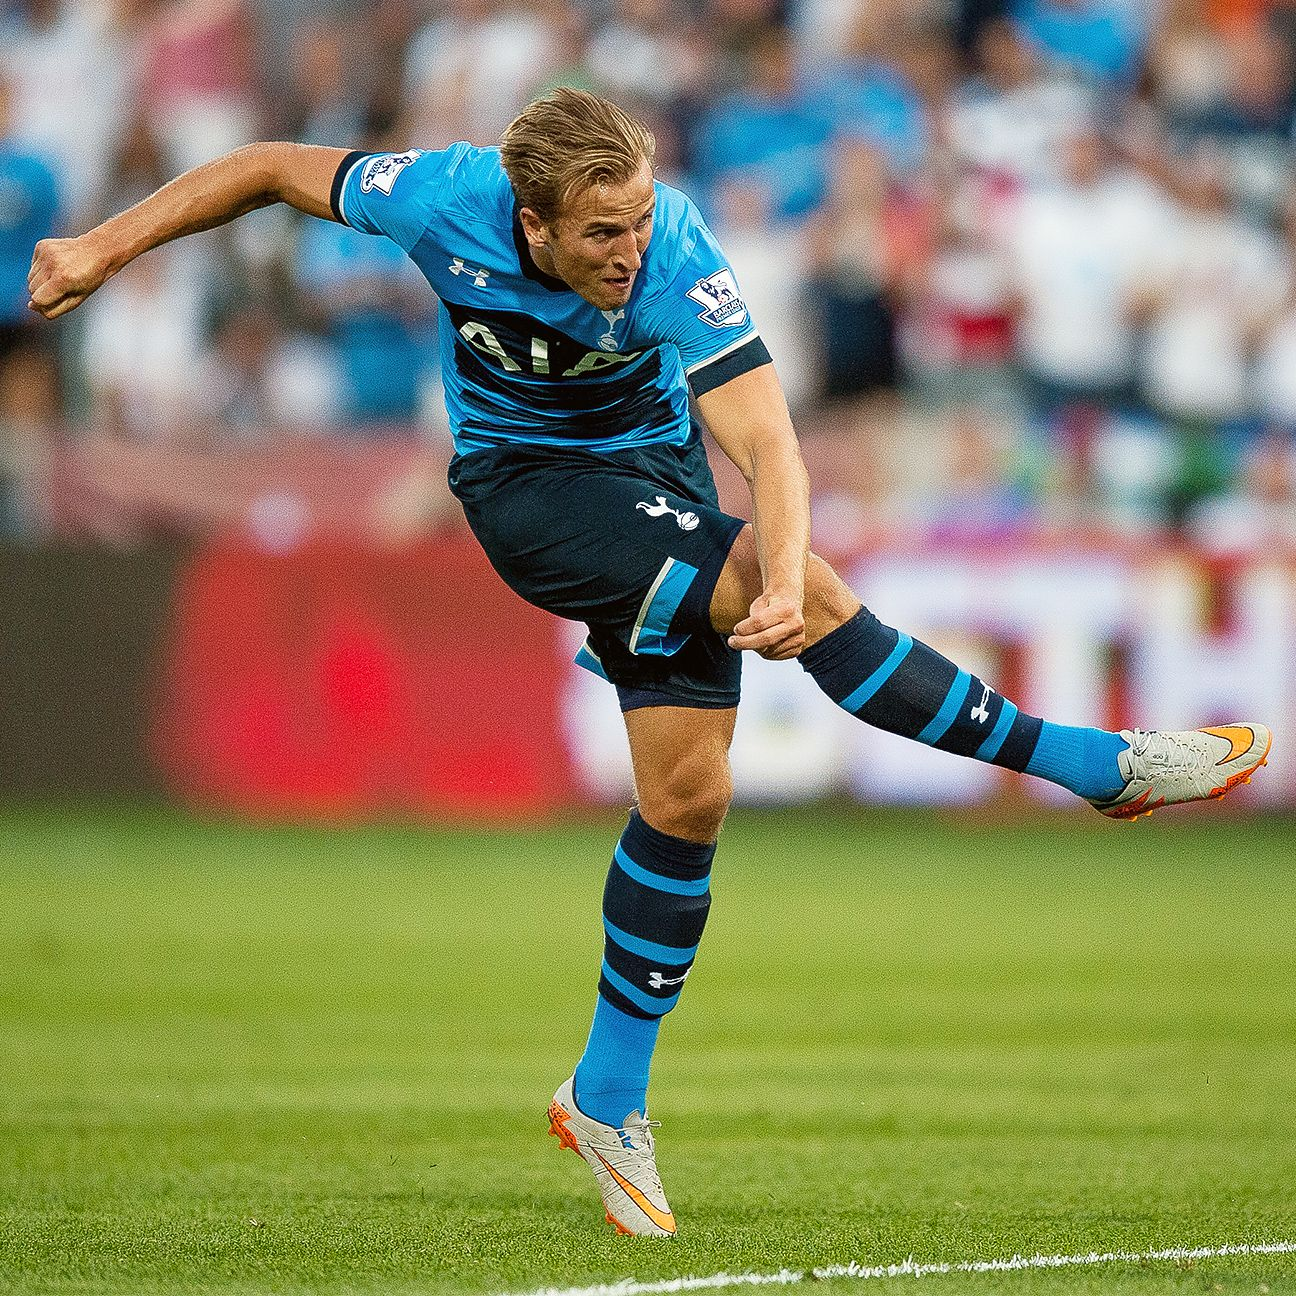 Harry Kane looked in mid-season form in Tottenham's 2-1 defeat to the MLS All-Stars.